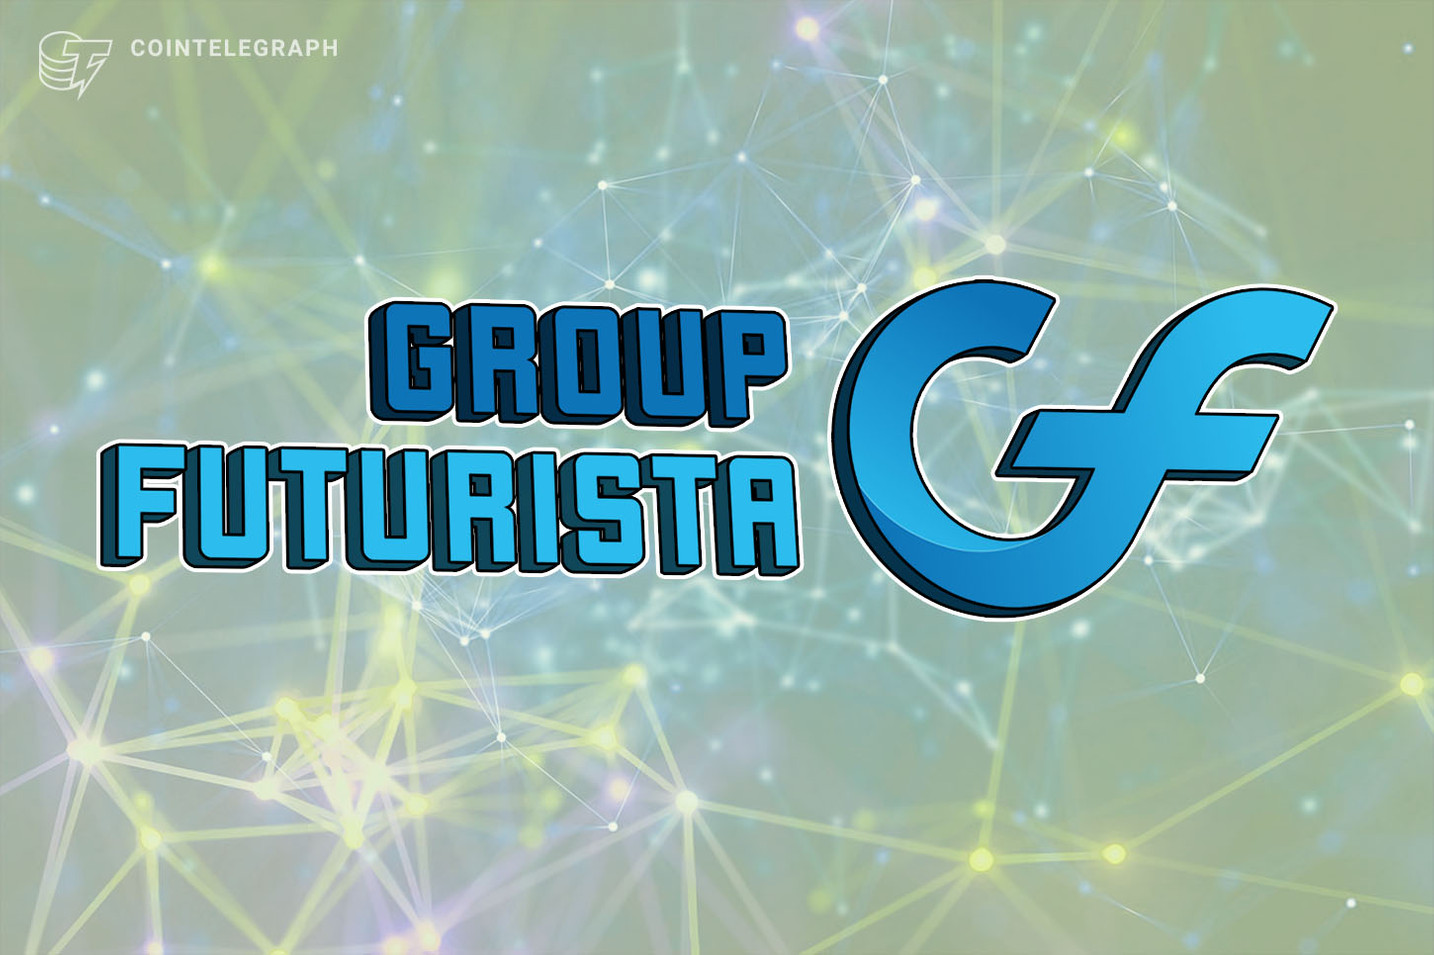 Boosting workflow automation for FI by GroupFuturista